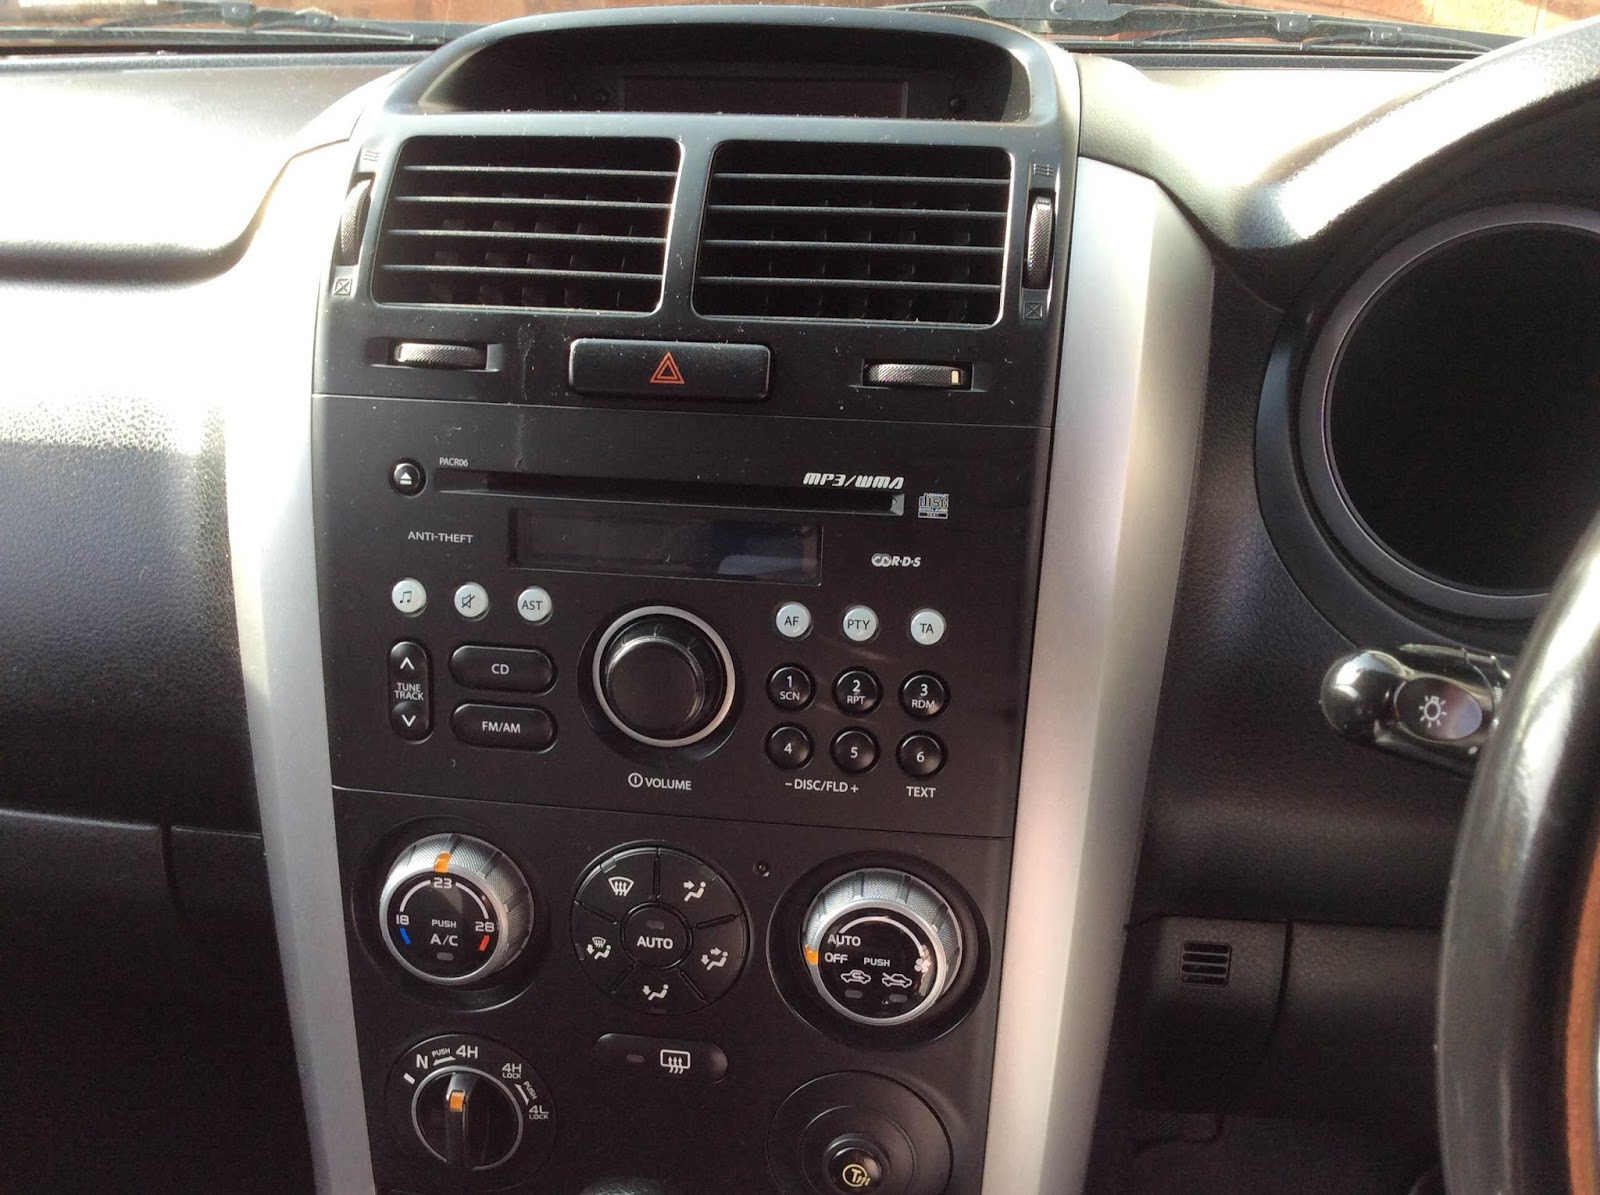 From Joying Engineershow To Resolve The Problem Of Abnormal Screen Wiring Car Audio Fail Nice Modify But You Can See Still Have Some Gaps Between Dashboard Because He Install This Universal Radioso Need Buy A Frame